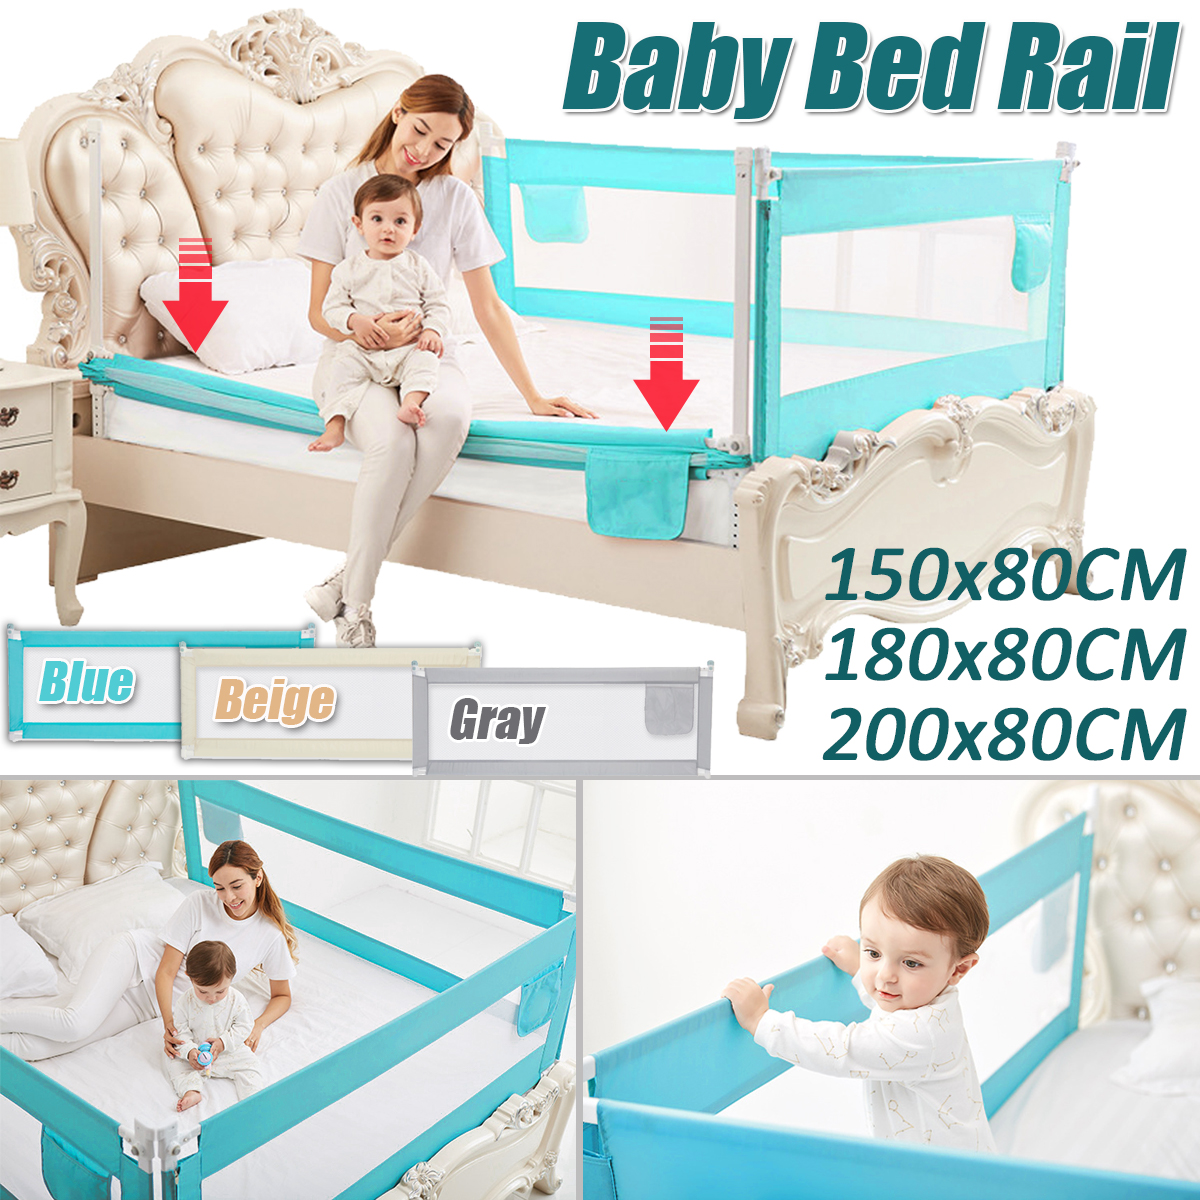 Bed Safety Rail Baby Bed Rail Baby Bed Bumper Fence Safety Gate Child Barrier ForToddler Bed Guard 150cm Adjustable Folding GIFT